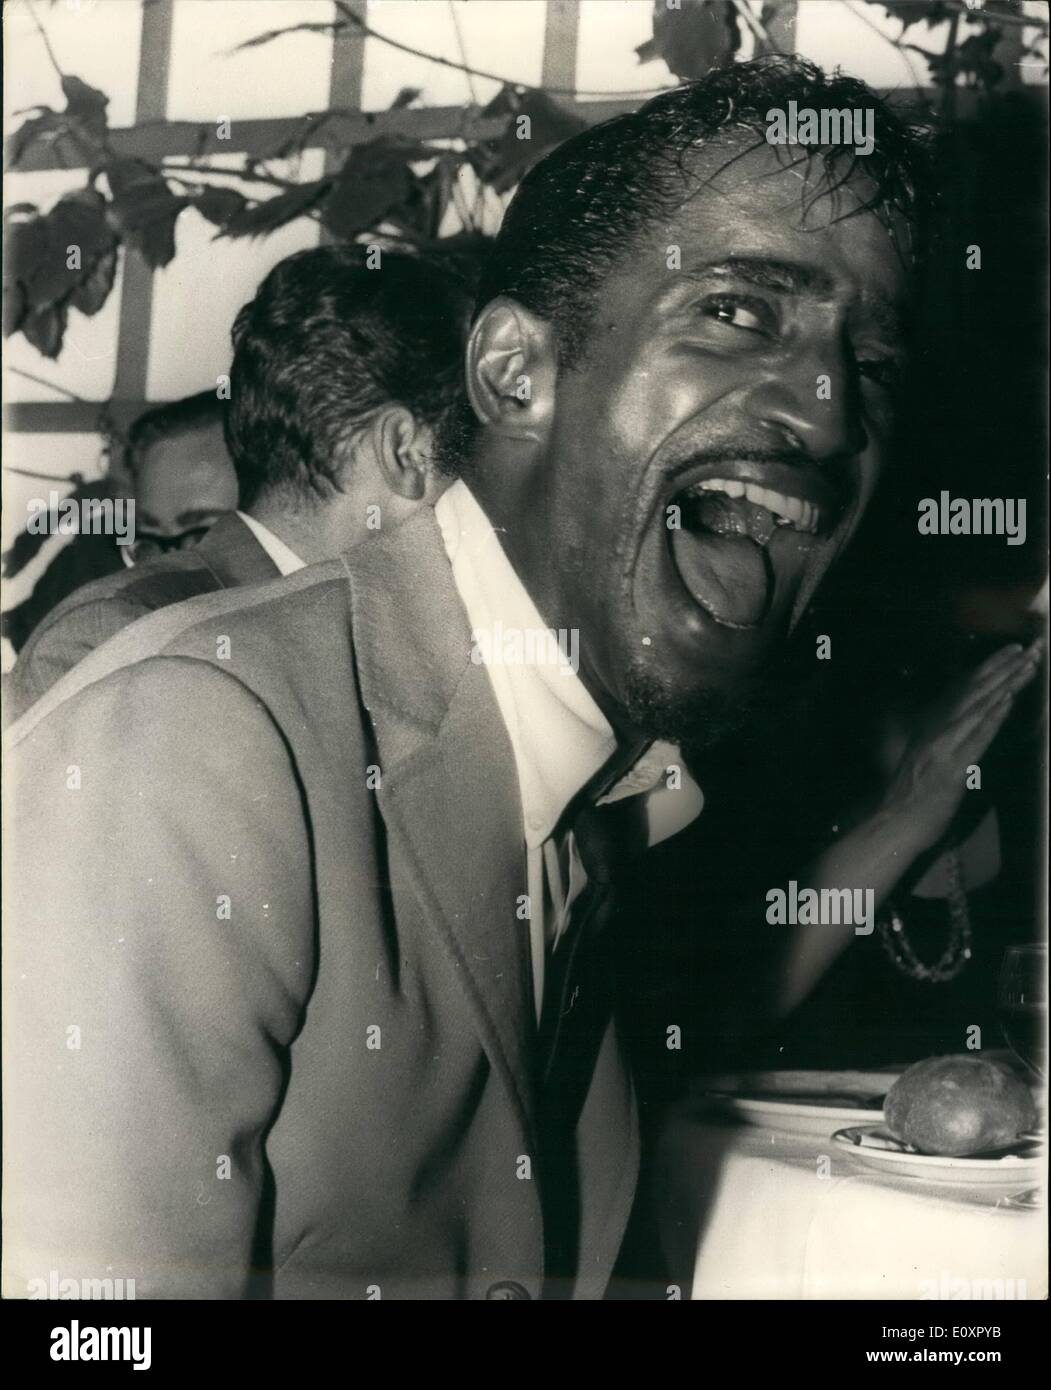 Aug. 08, 1967 - Sammy Davis' And His Pal Gerry - An All-Night Party When Sammy Davis Jr., heard Gerry Mardsen and Stock Photo